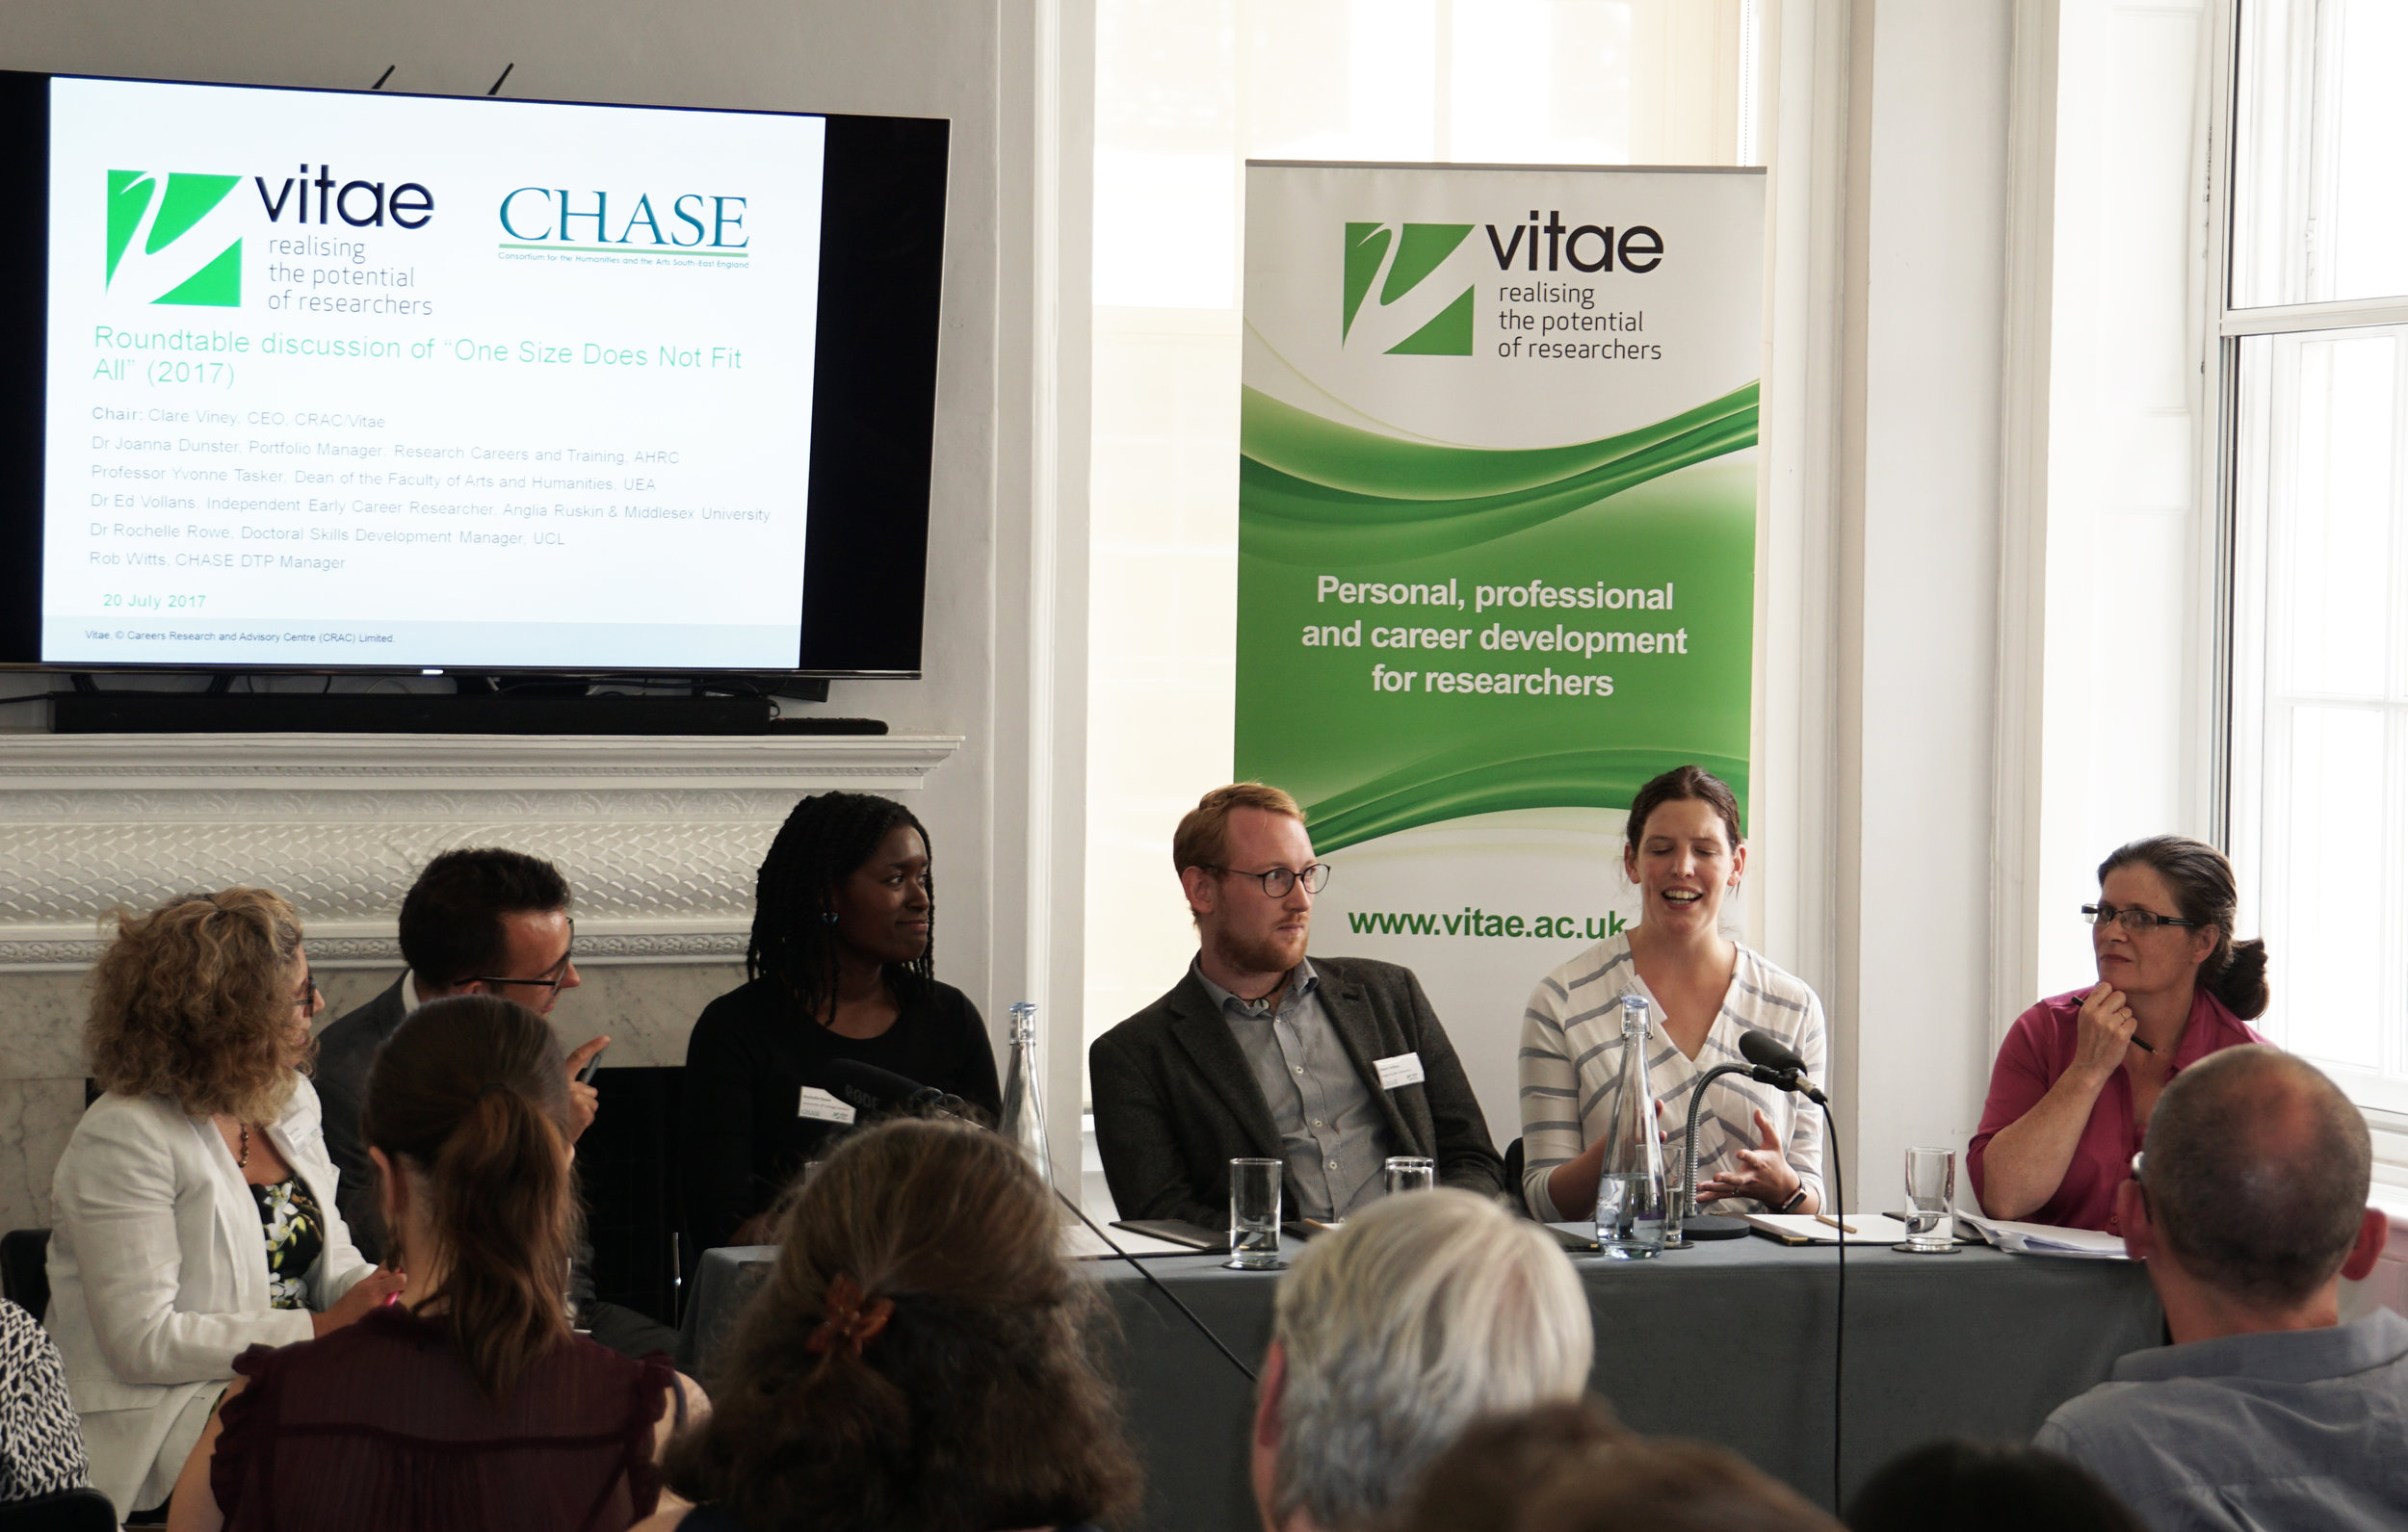 """Roundtable discussion of """"One Size Does Not Fit All"""" (2017)  L-R: Chaired by Clare Viney, CEO, CRAC Rob Witts, CHASE DTP Manager Dr Rochelle Rowe, Doctoral Skills Development Manager, UCL Dr Joanna Dunster, Portfolio Manager: Research Careers and Training, AHRC Dr Ed Vollans, Independent Early Career Researcher, Anglia Ruskin & Middlesex University Professor Yvonne Tasker, Dean of the Faculty of Arts and Humanities, UEA"""